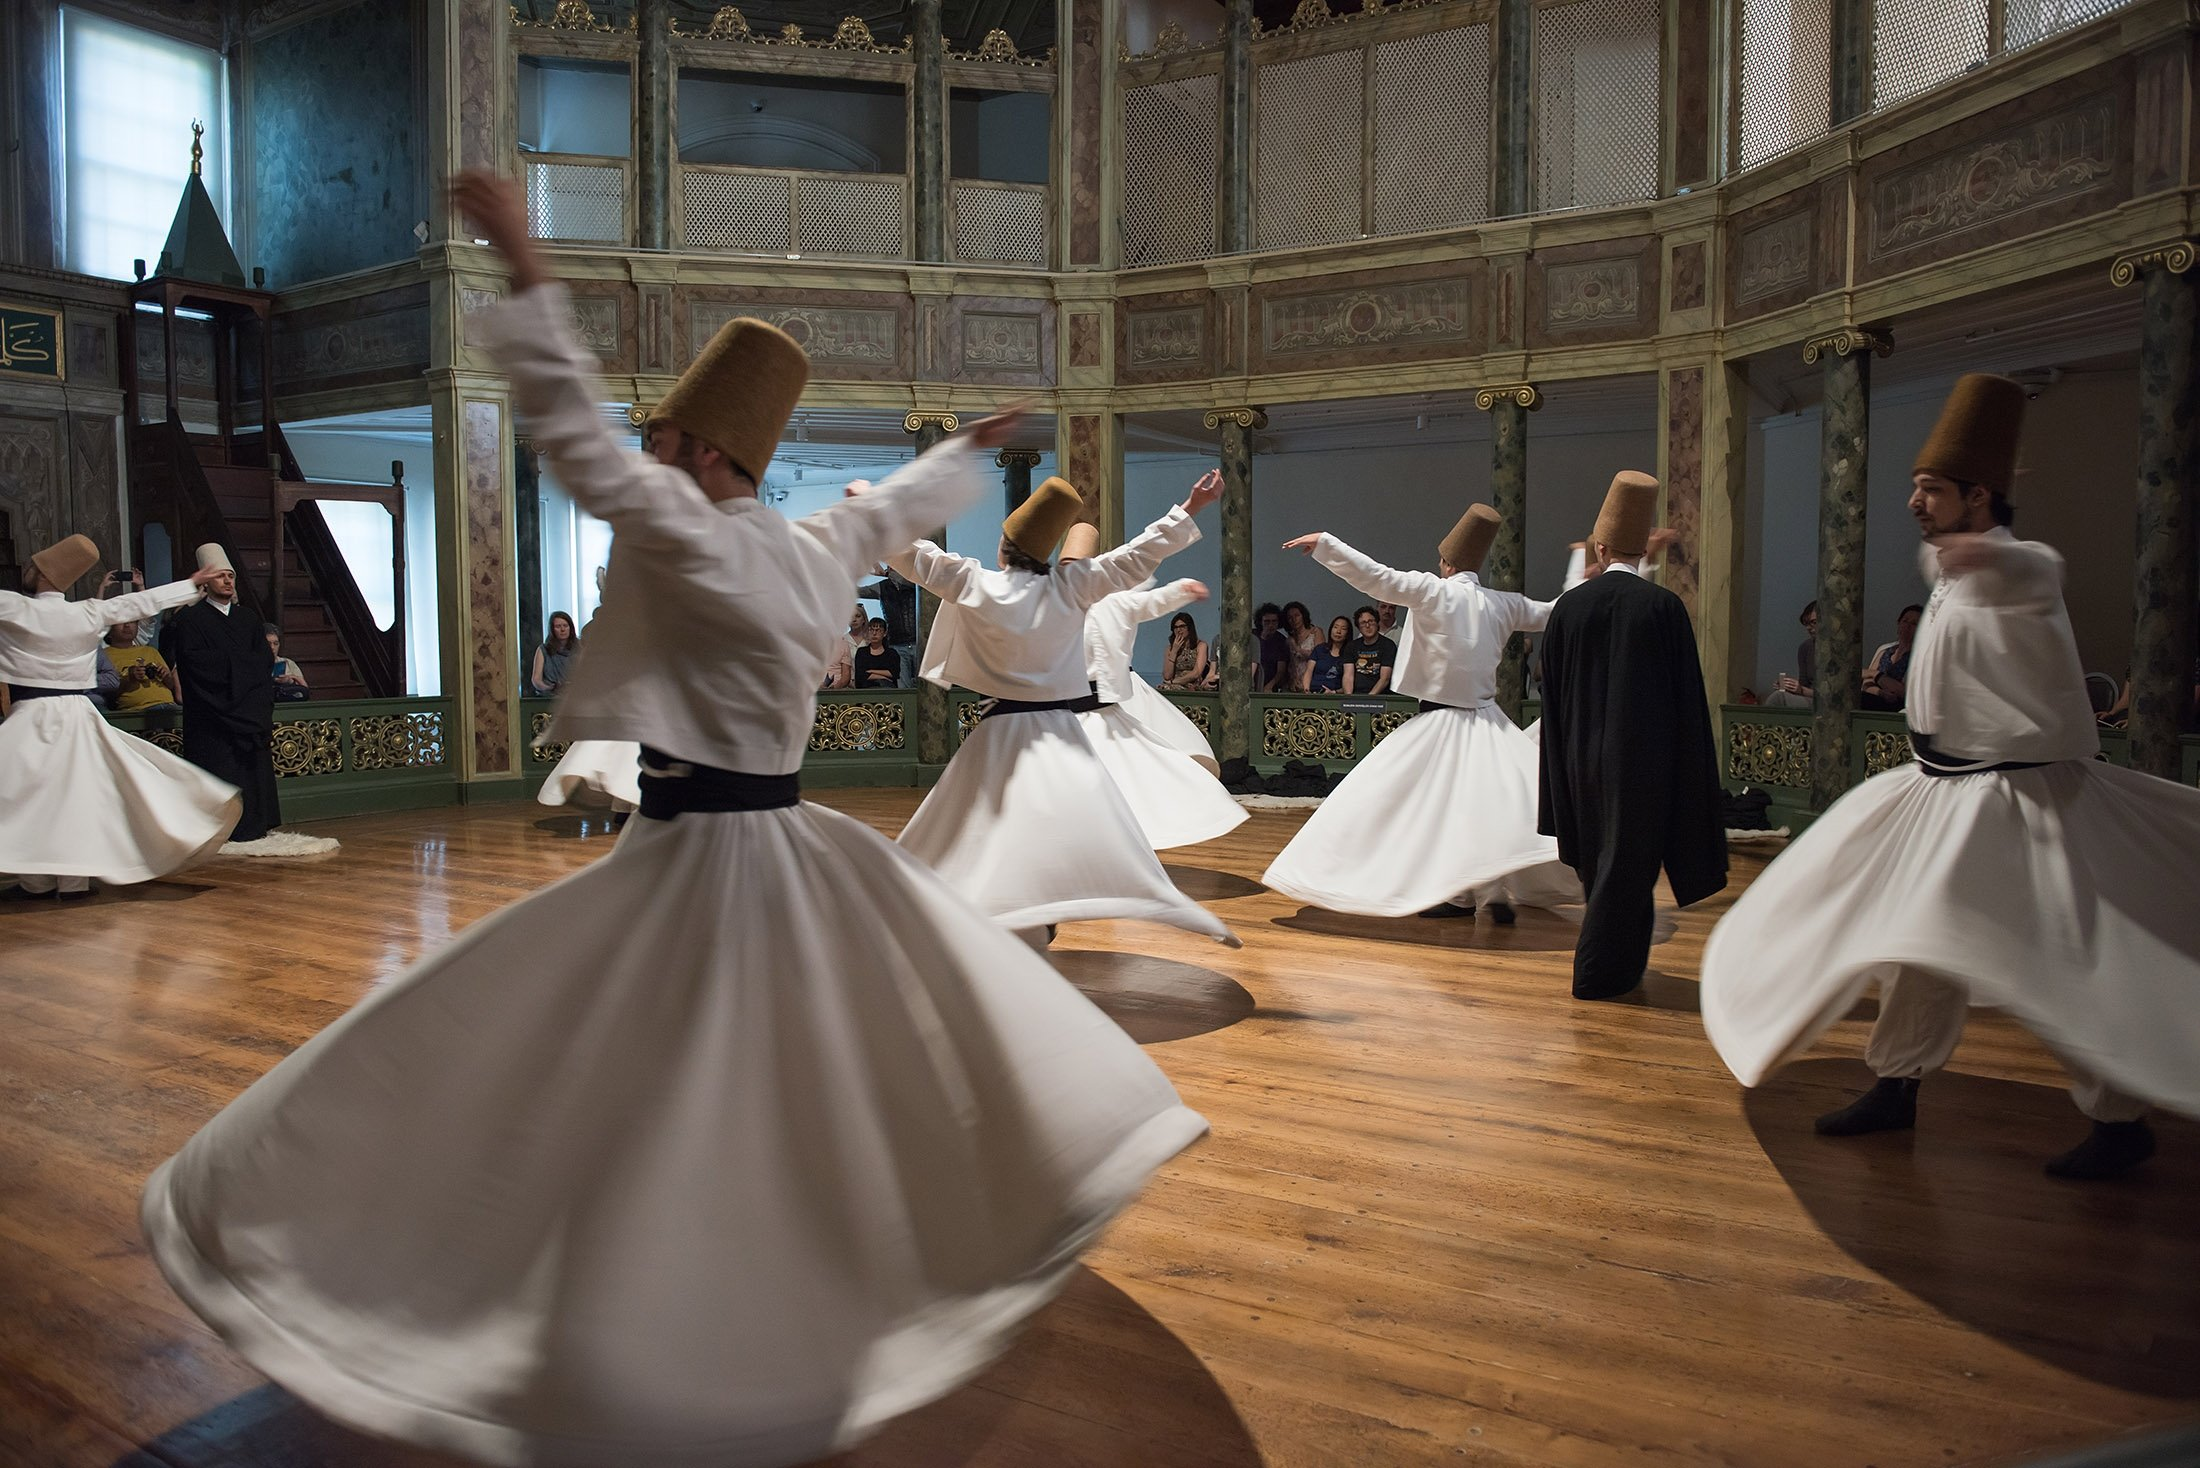 Whirling dervishes ceremony. (Shutterstock Photo)